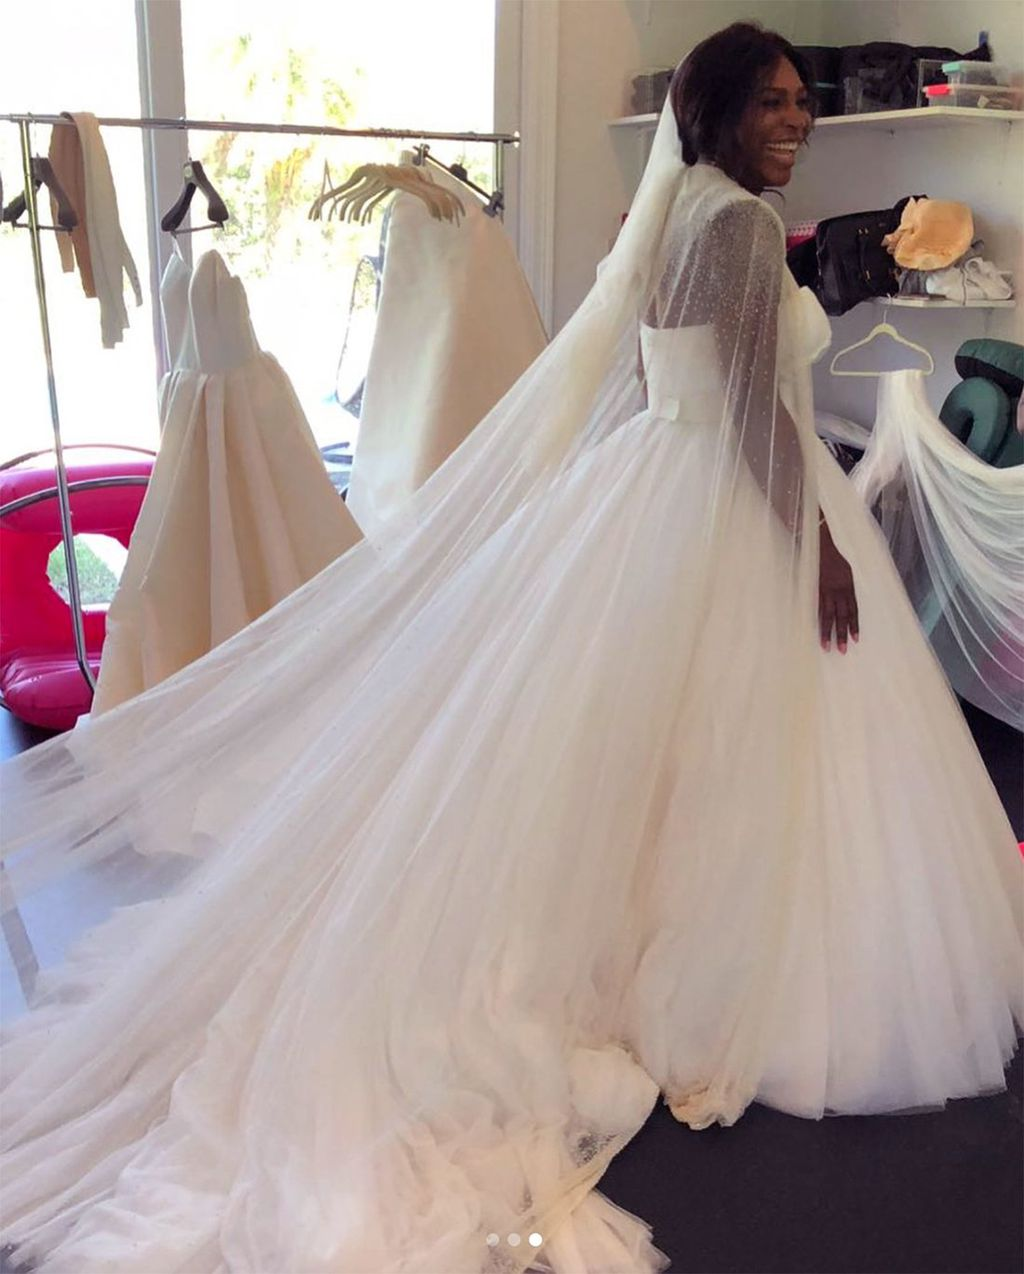 Fronting For February March Edition Of The Magazine 36 Year Old Has Shown Just What Went Into Creating Dreamy Gown That Featured A Voluminous Tulle